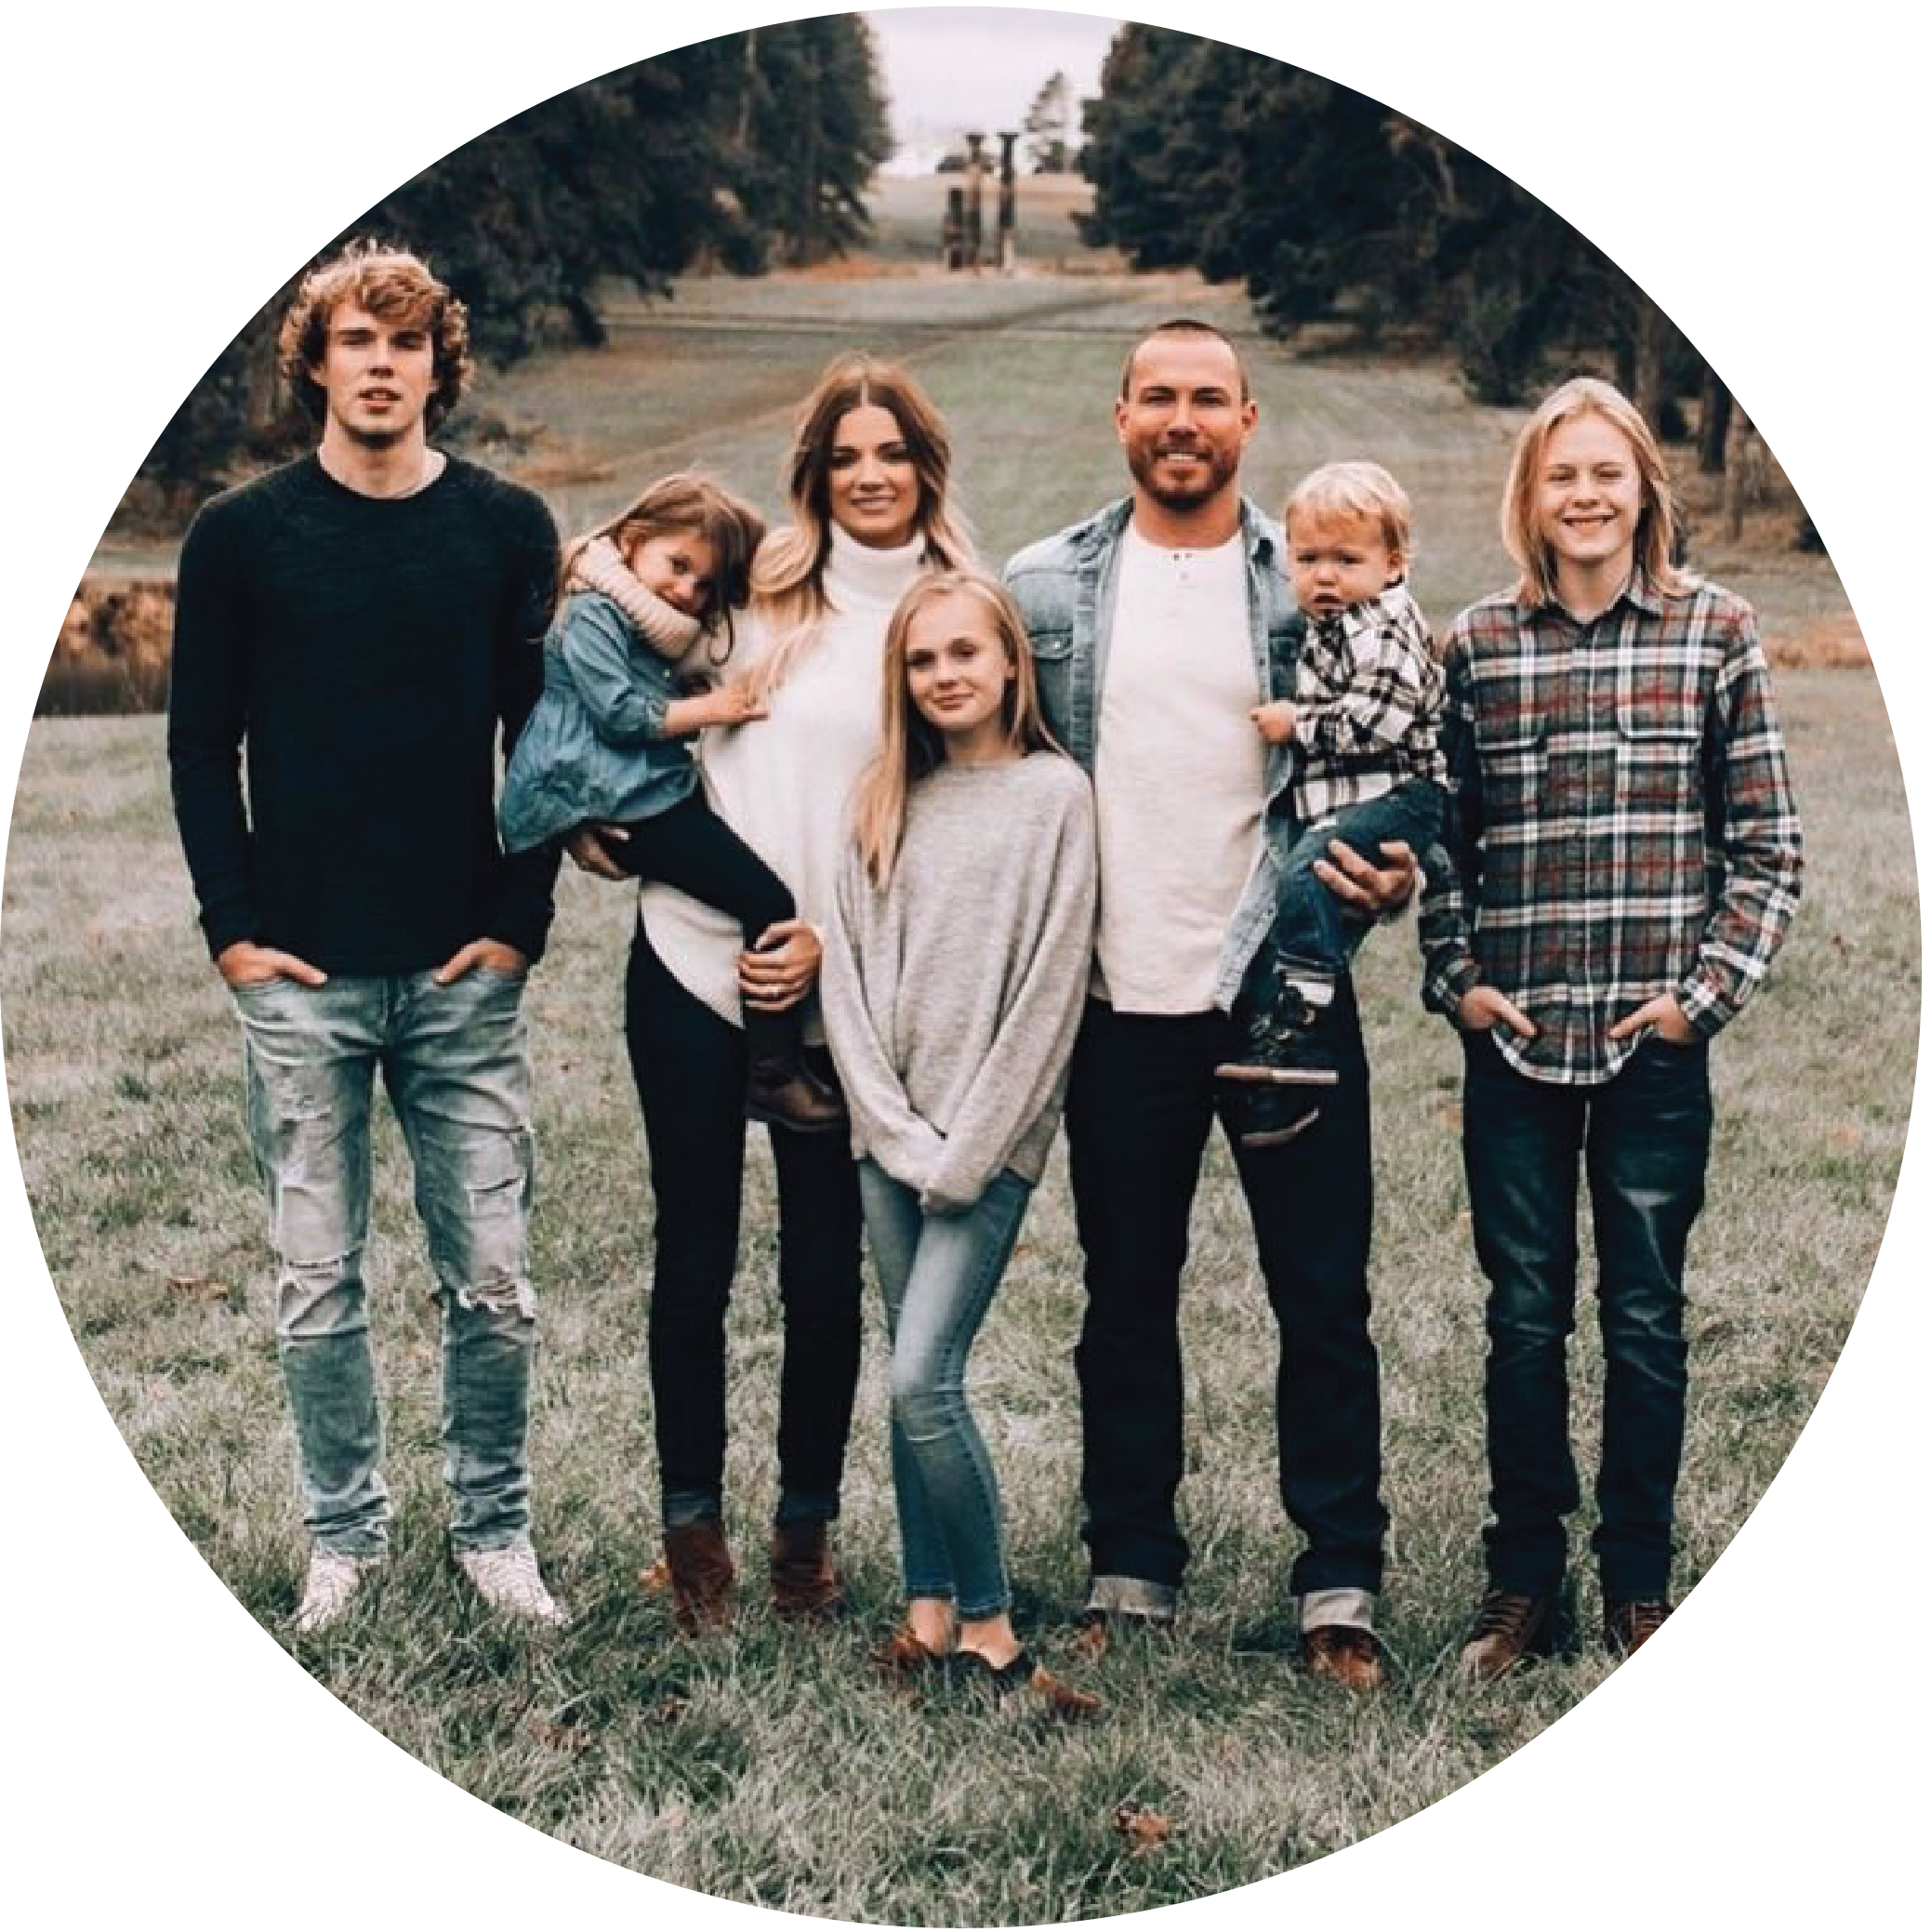 family photo 2018.png